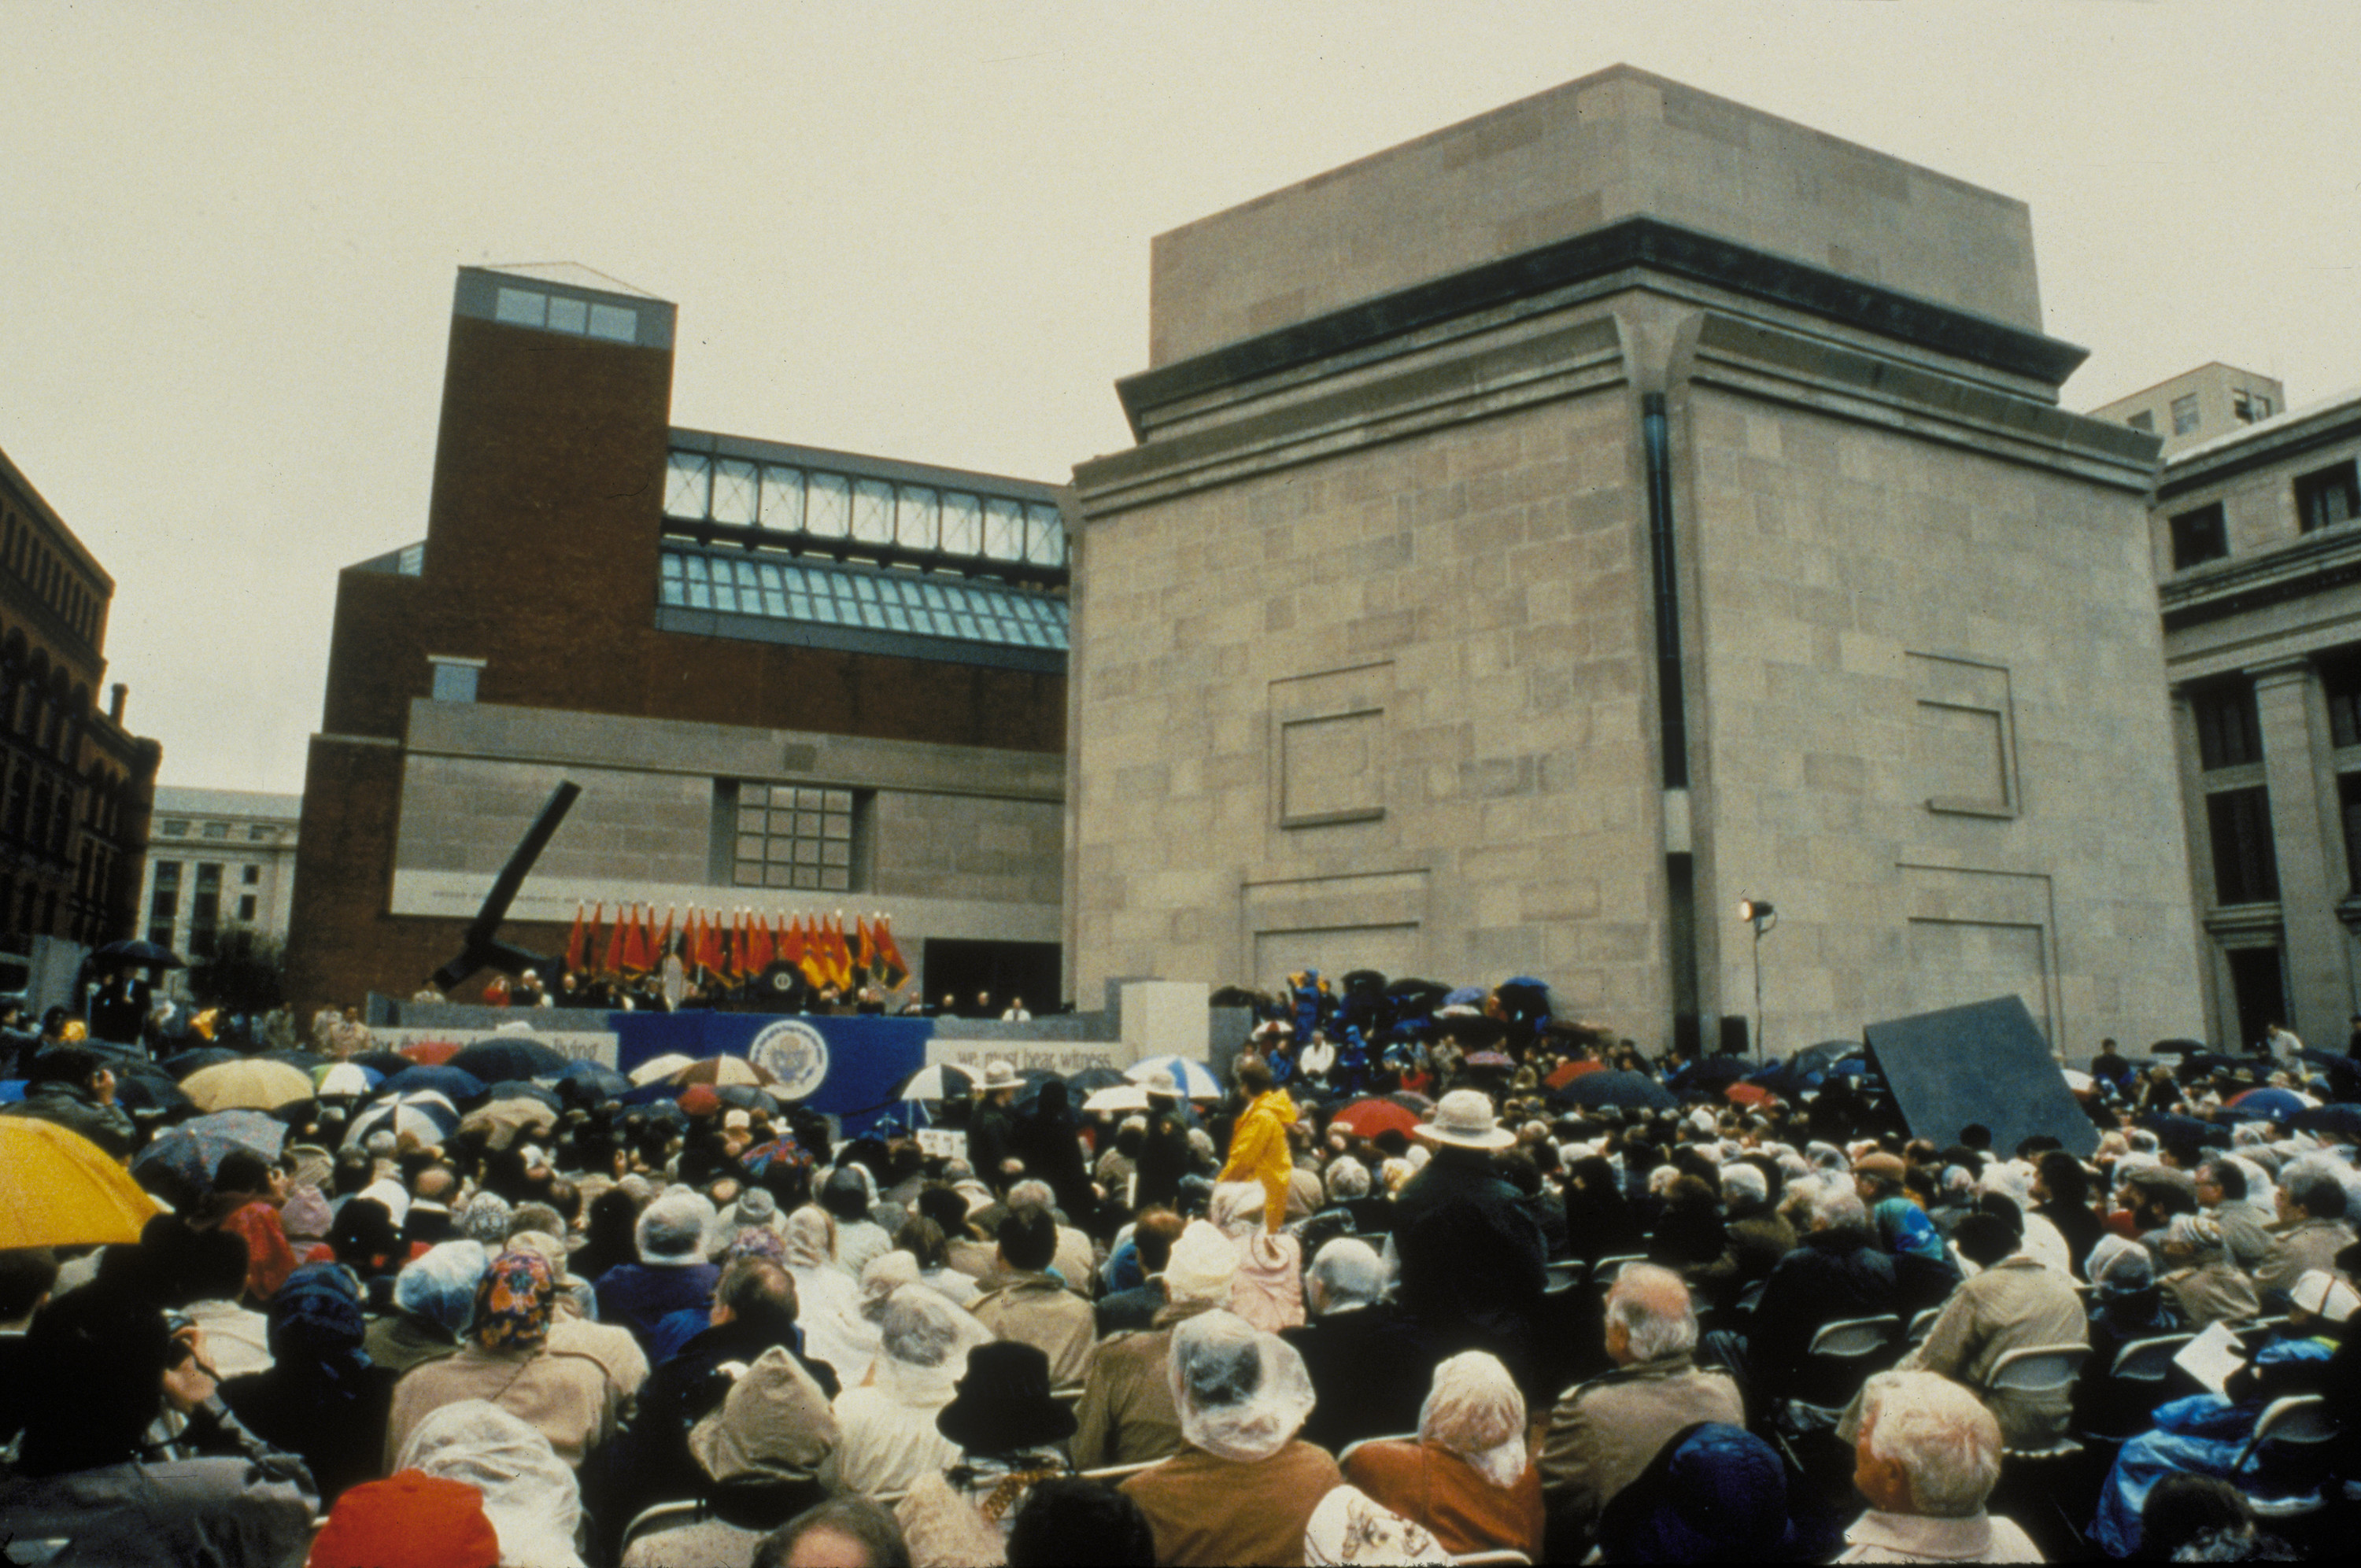 A large crowd fills Eisenhower Plaza during the dedication ceremony of the U.S. Holocaust Memorial Museum.